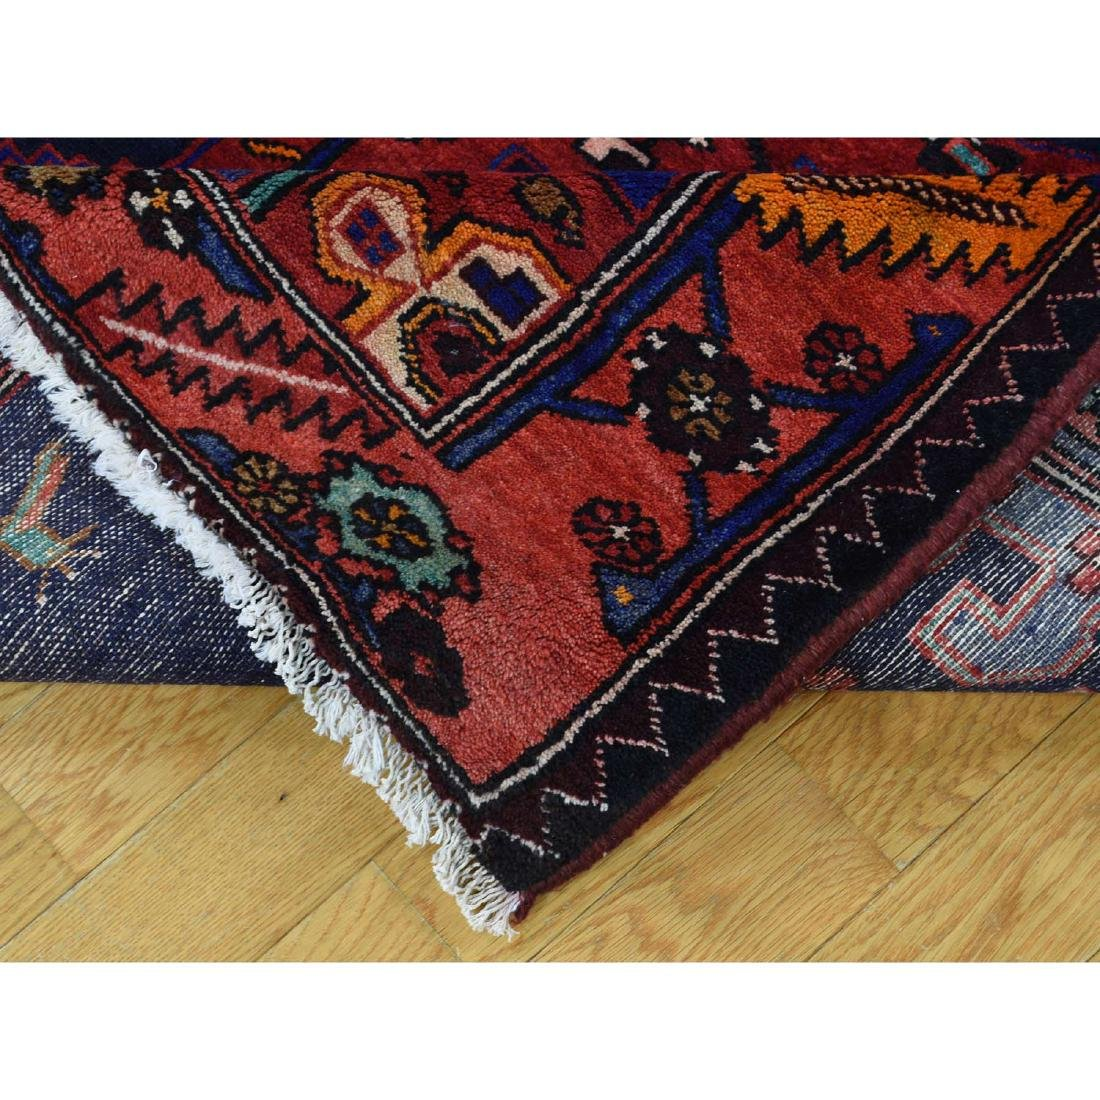 Hand Knotted Semi Antique Persian Hamadan Rug 5.1x9 - 7